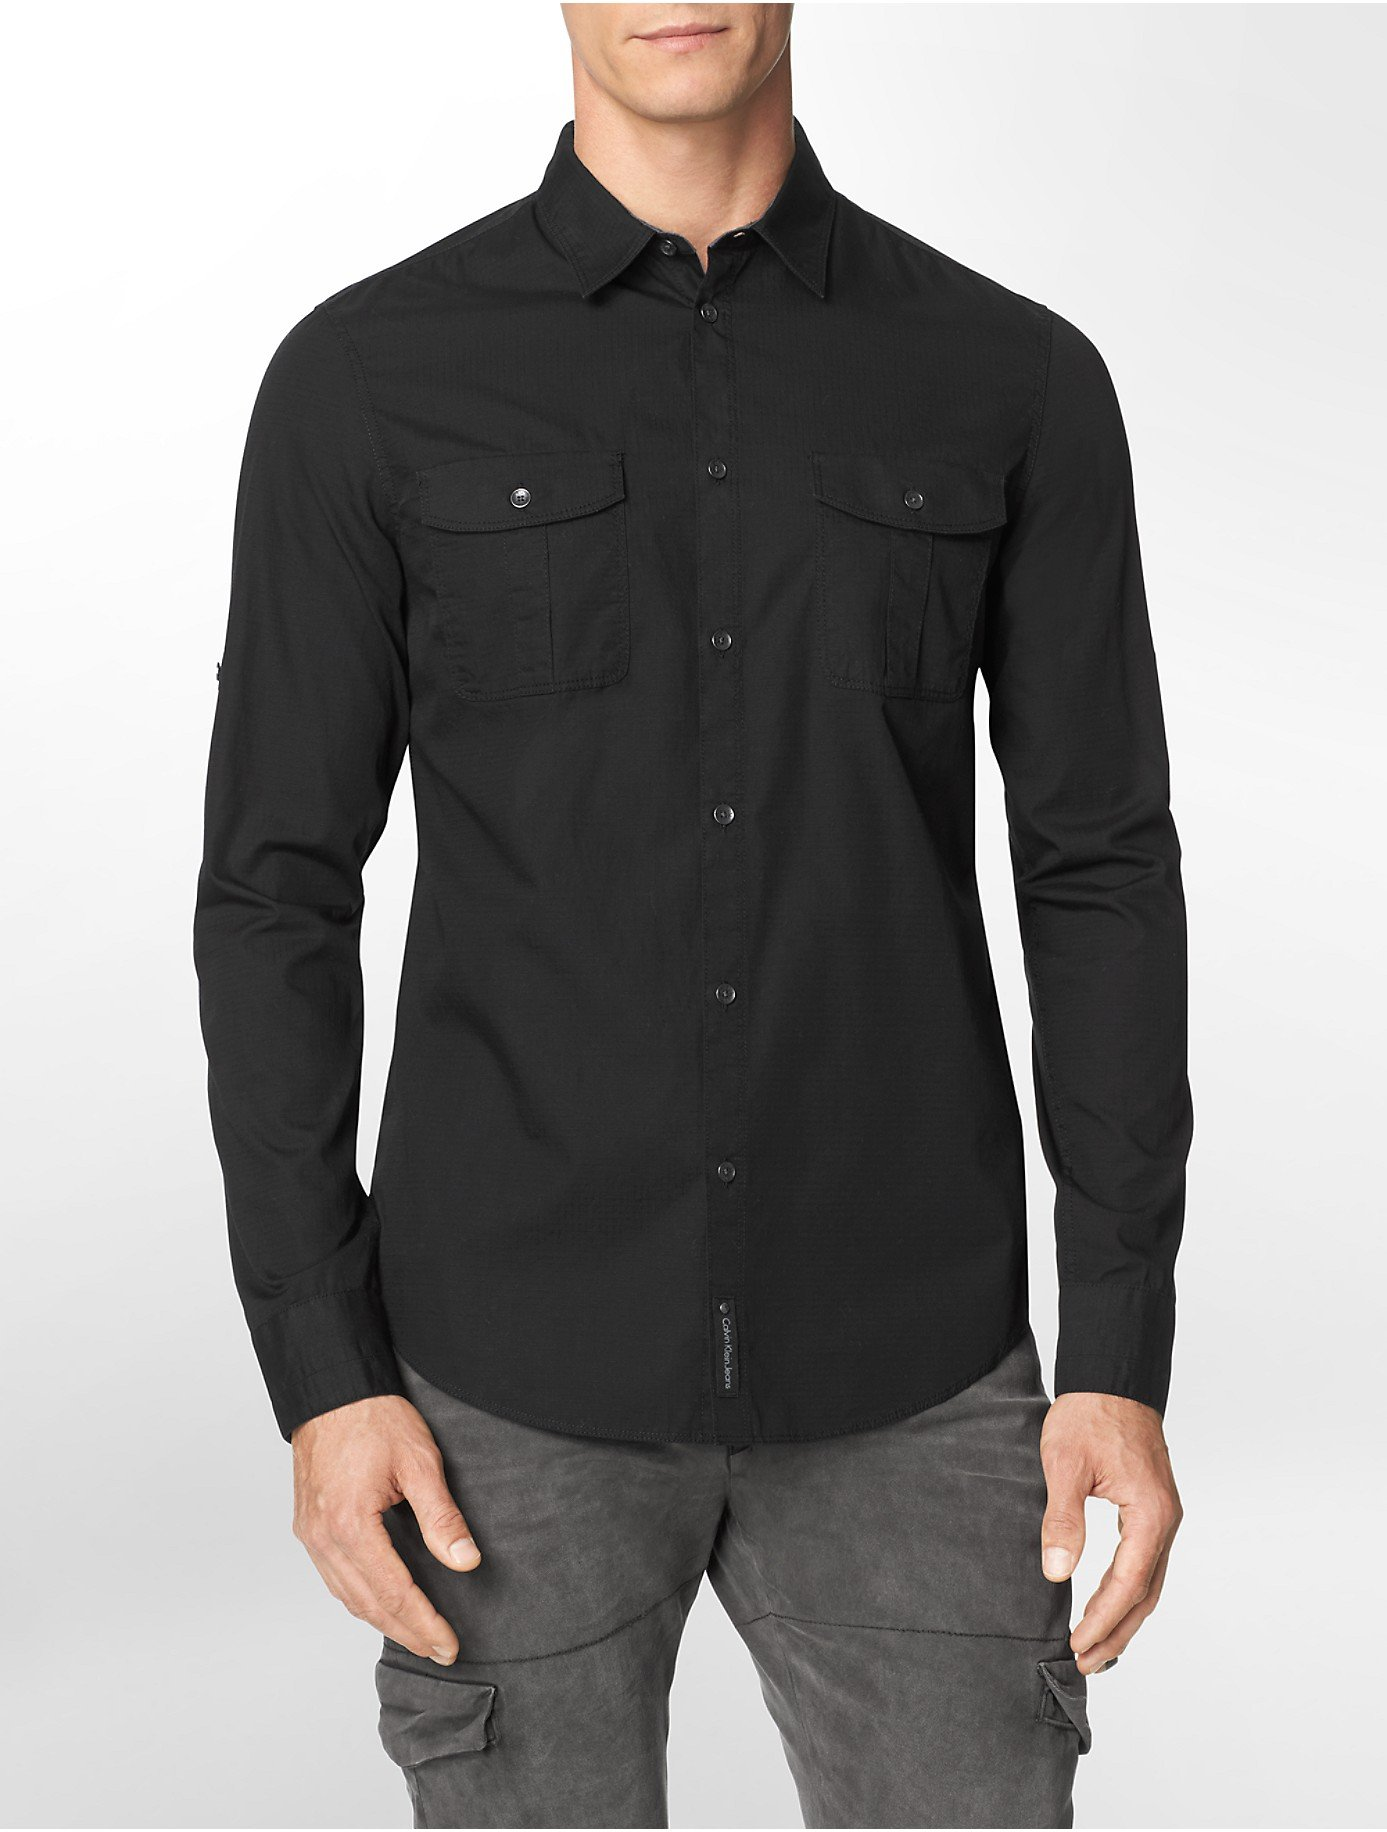 Mens Long Sleeve Seersucker Shirts